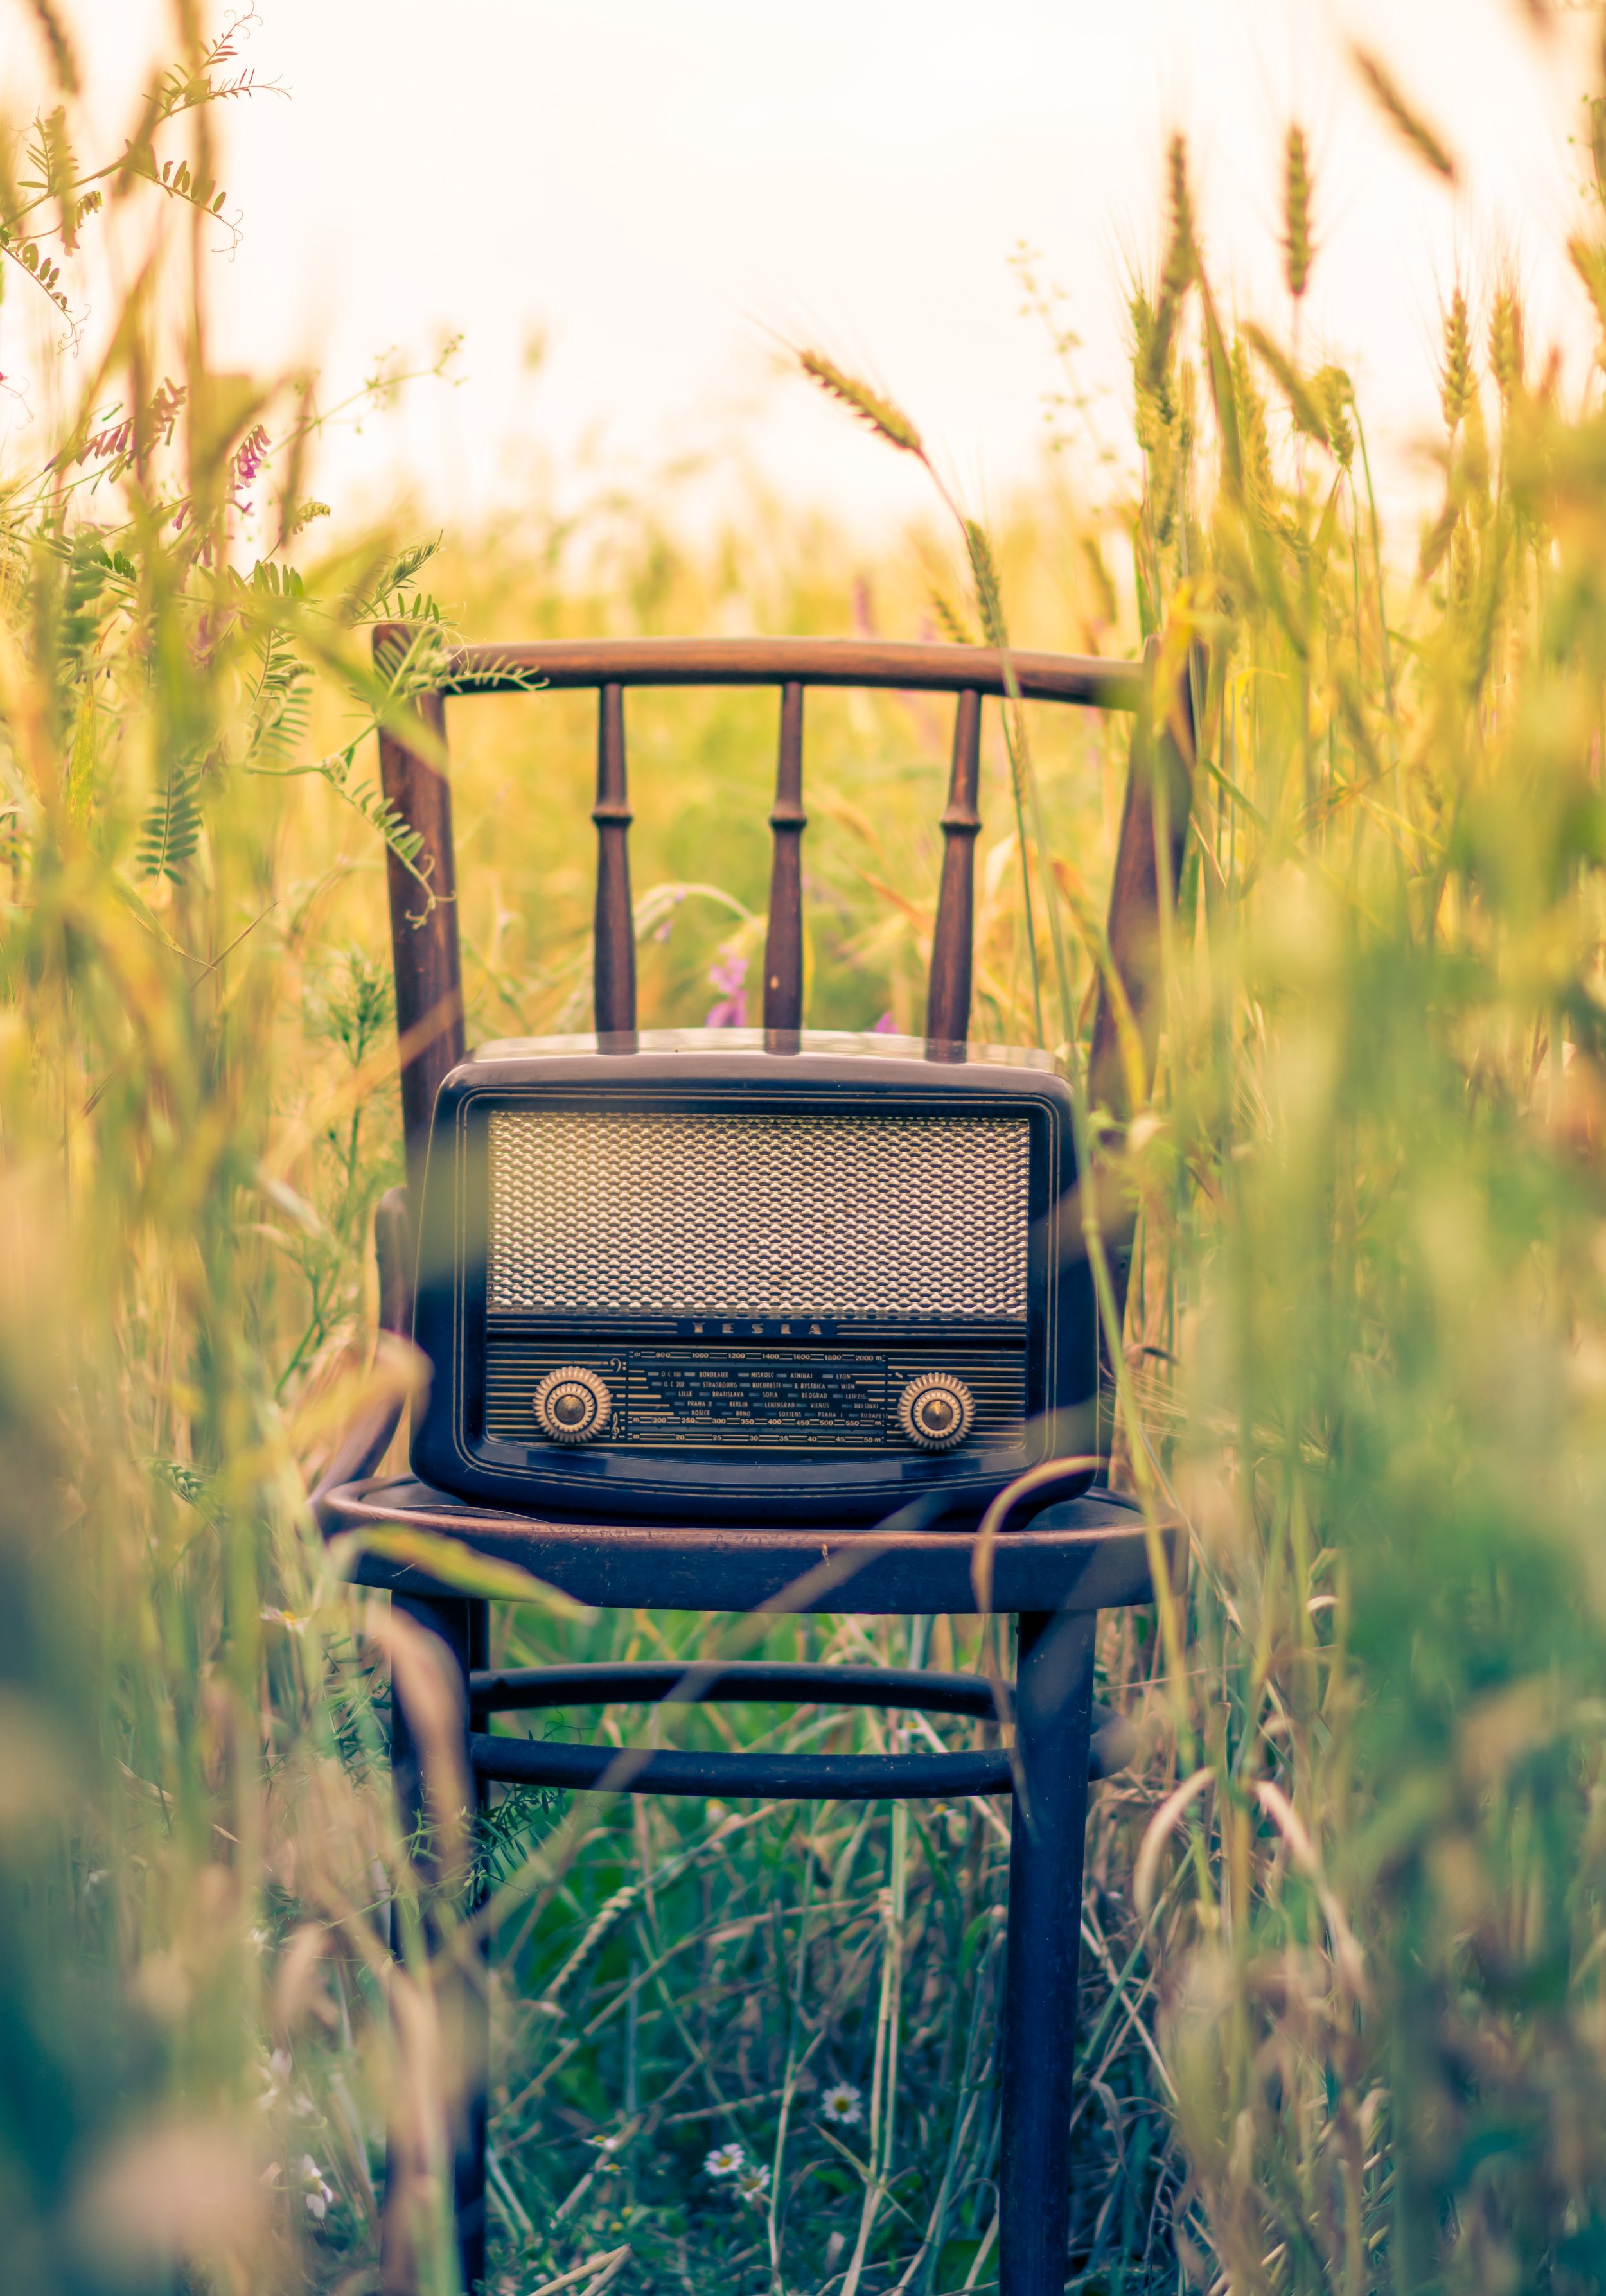 Pull up a chair... - And listen to the featured tracks (directly below)...They will revolve, so check back often...Or get up andSHAKE, GROOVE, DANCE and SING to your heart's content.In-JOY!Oh... and please wait the 5 seconds required for the song to start. Patience is a virtue, my darling.